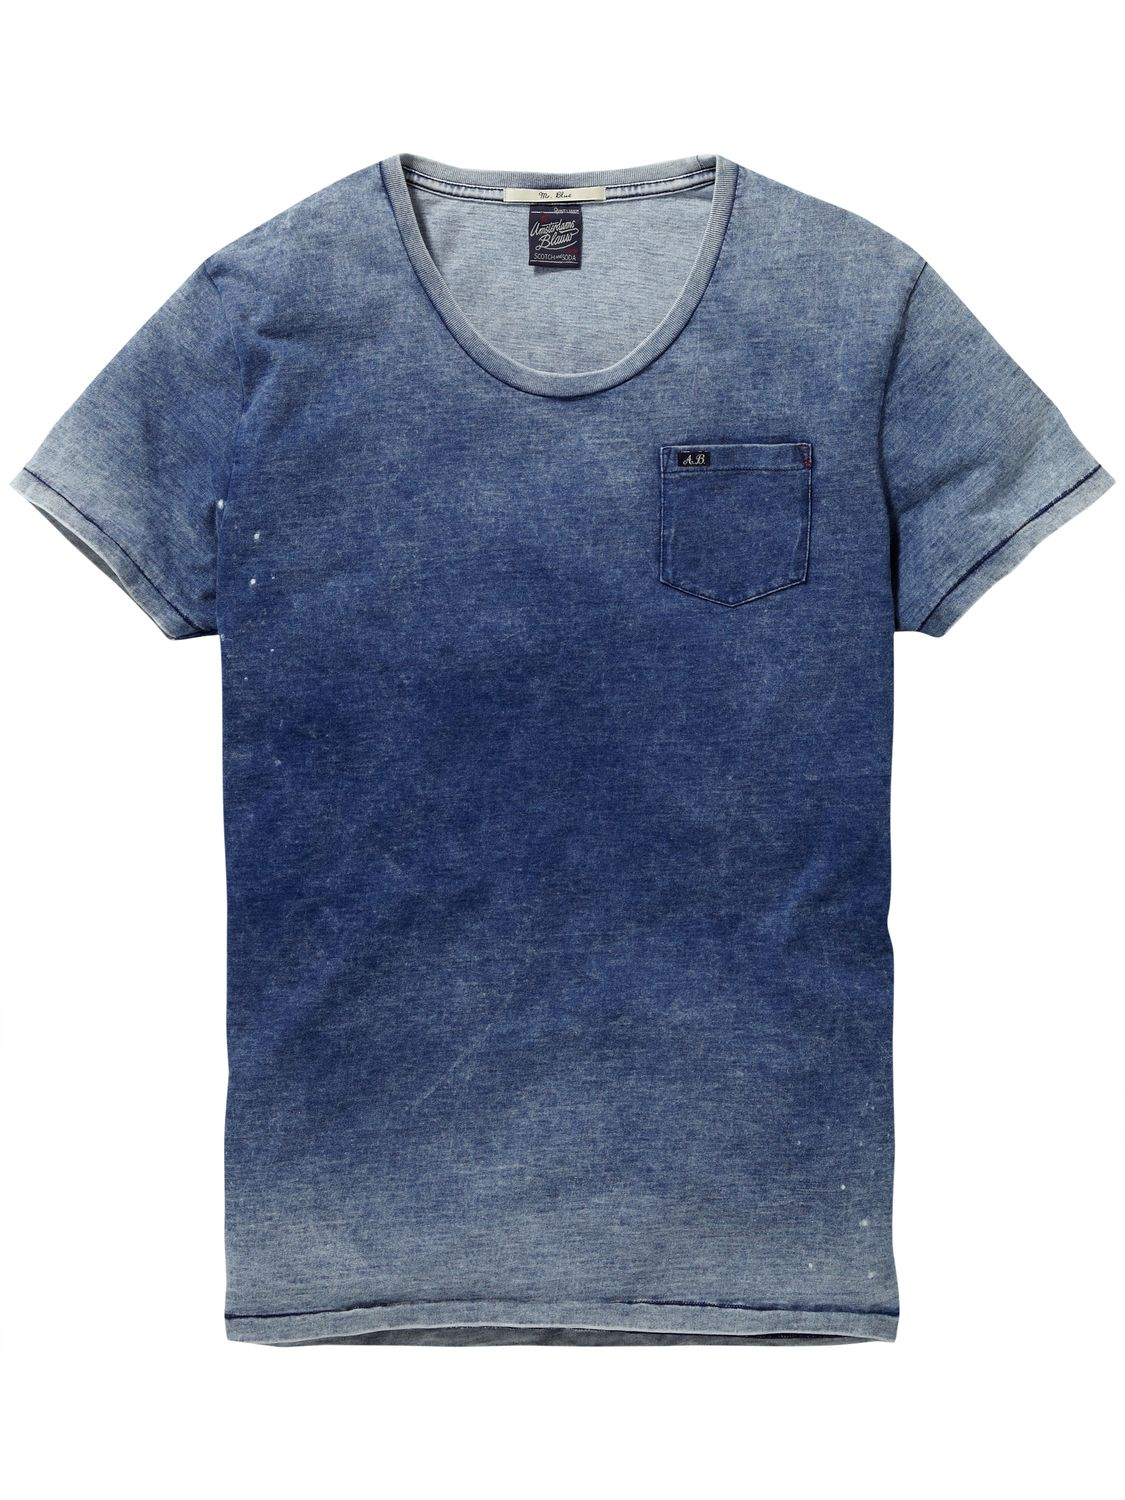 Scotch Soda Polo YARDN Scotch Soda soldes vsa0I4